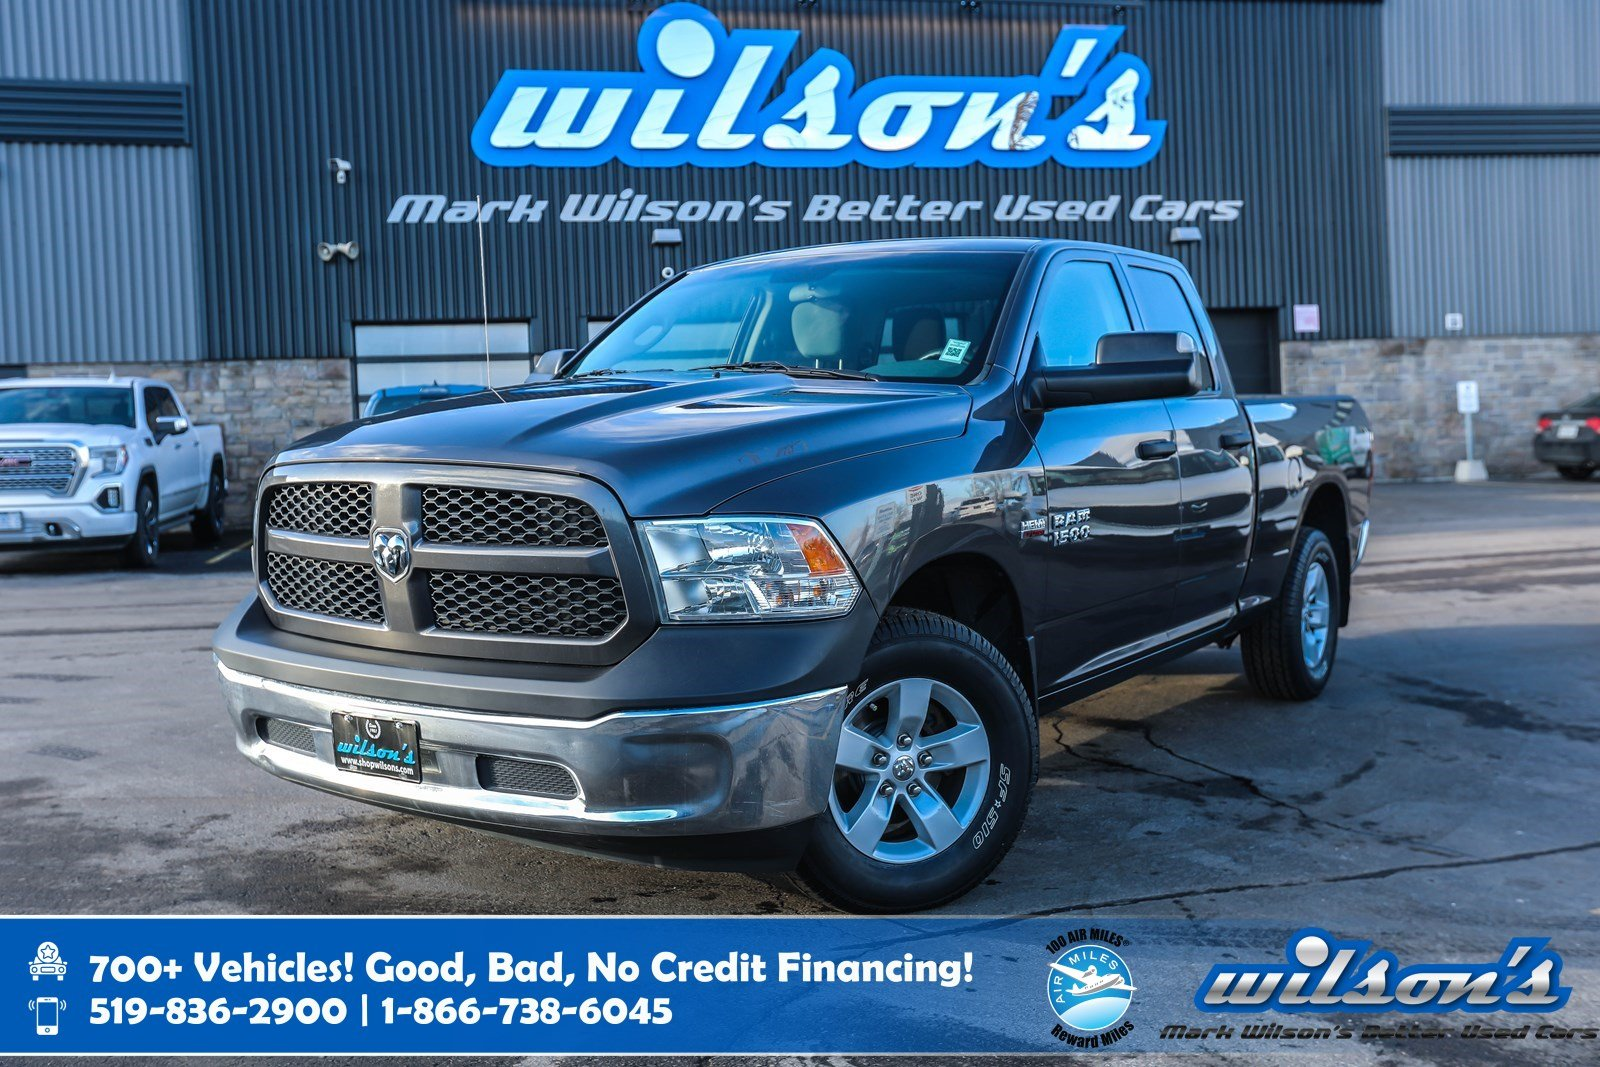 Certified Pre-Owned 2016 Ram 1500 ST Quad Cab 4x4 - SXT Upgrade, 5.7L HEMI V8, Tow Package, 3.92 Rear Axle Ratio, Bedliner & More!